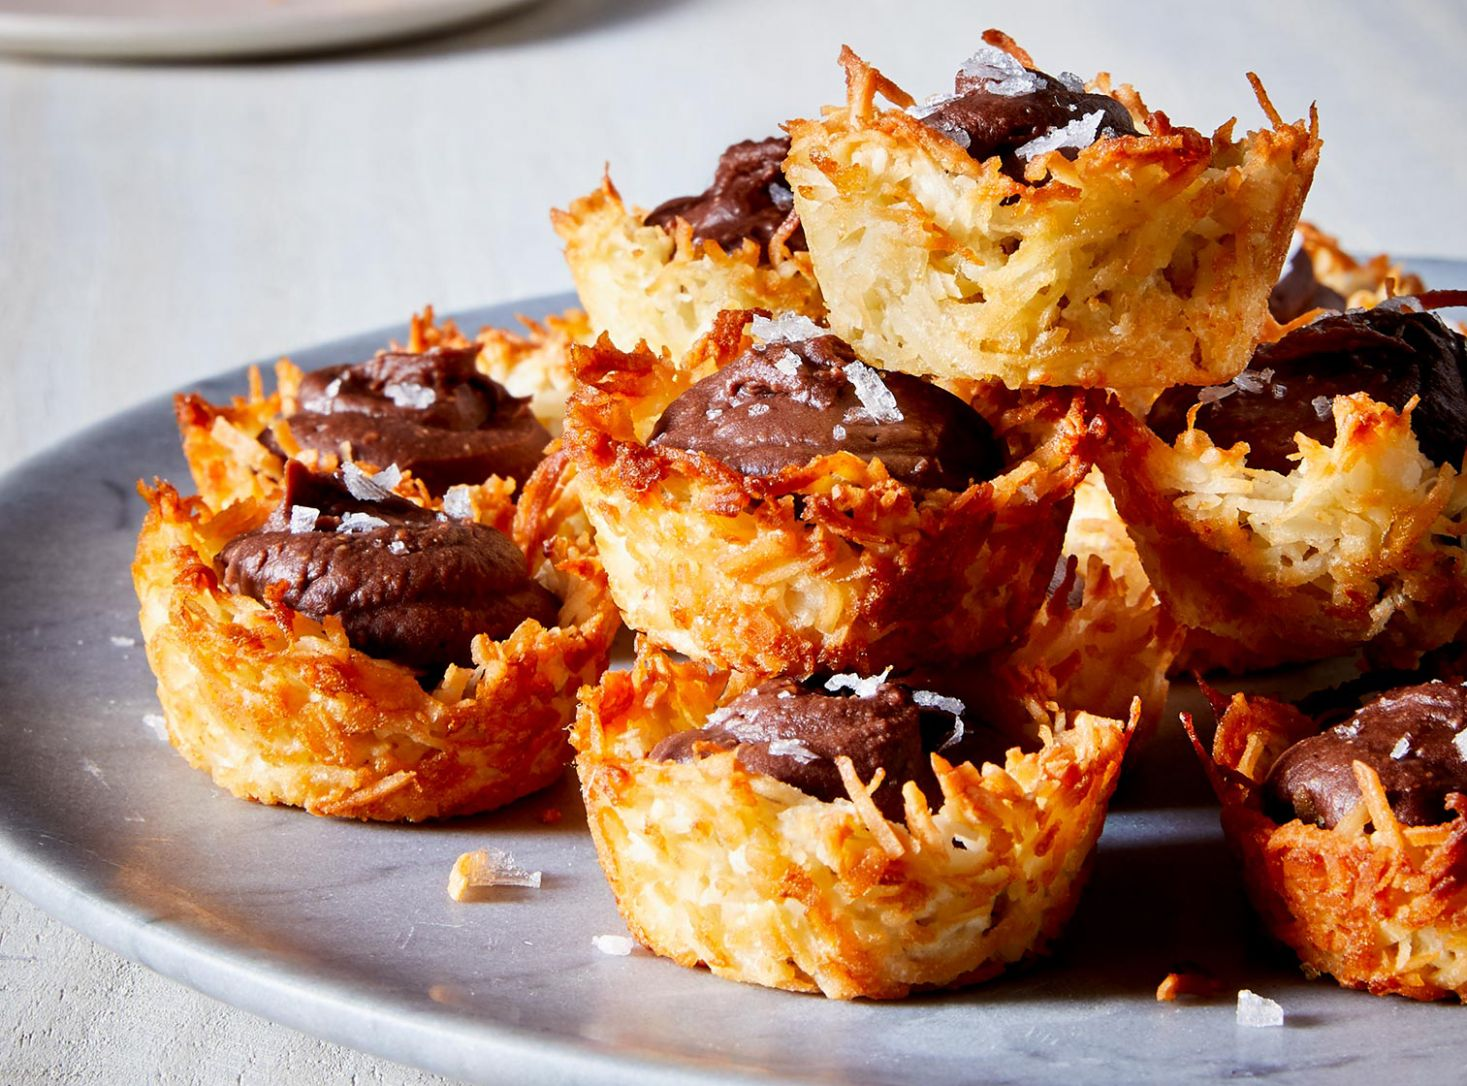 12 Easy Healthy Desserts the Whole Family Will Love   Real Simple - Dessert Recipes Delicious